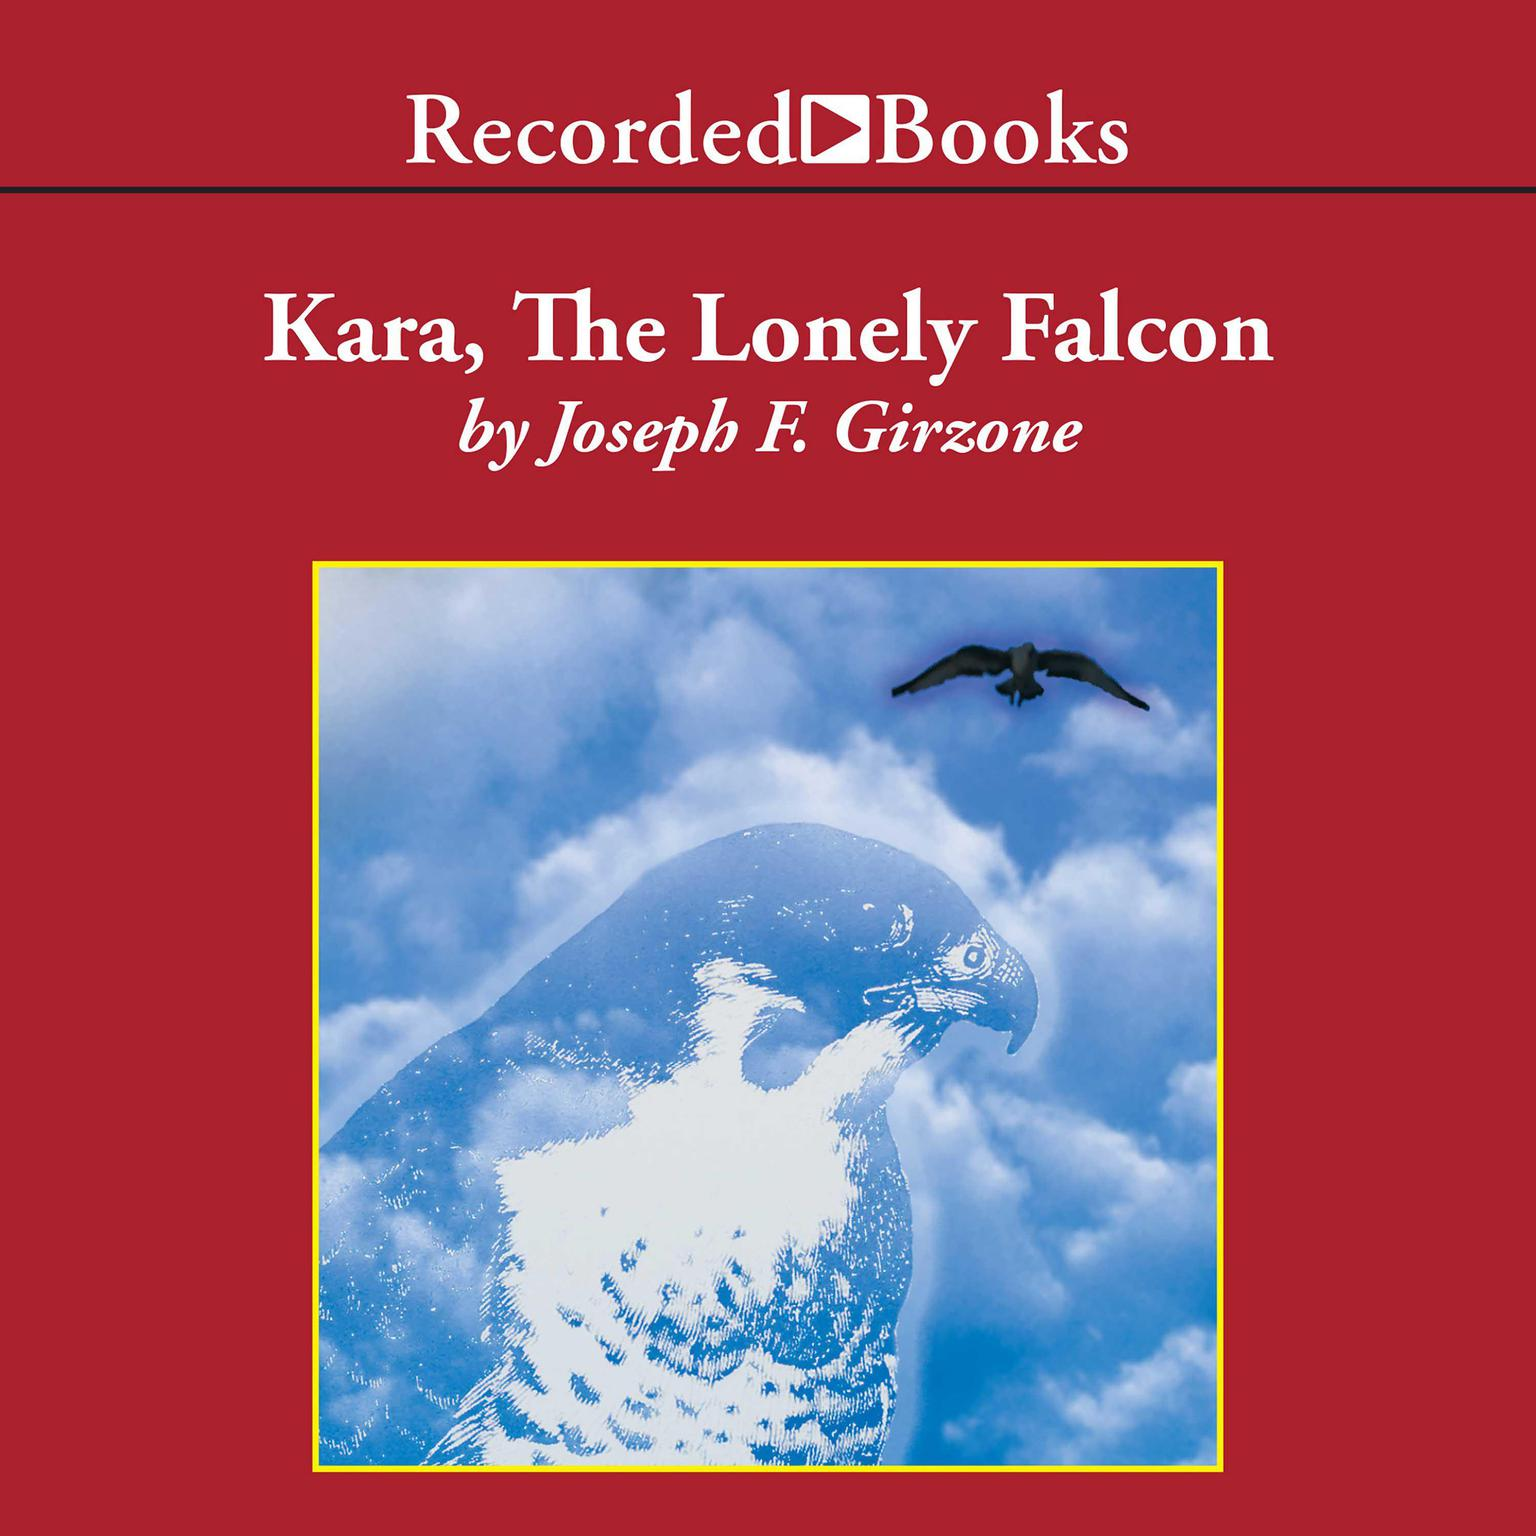 Kara, the Lonely Falcon Audiobook, by Joseph F. Girzone